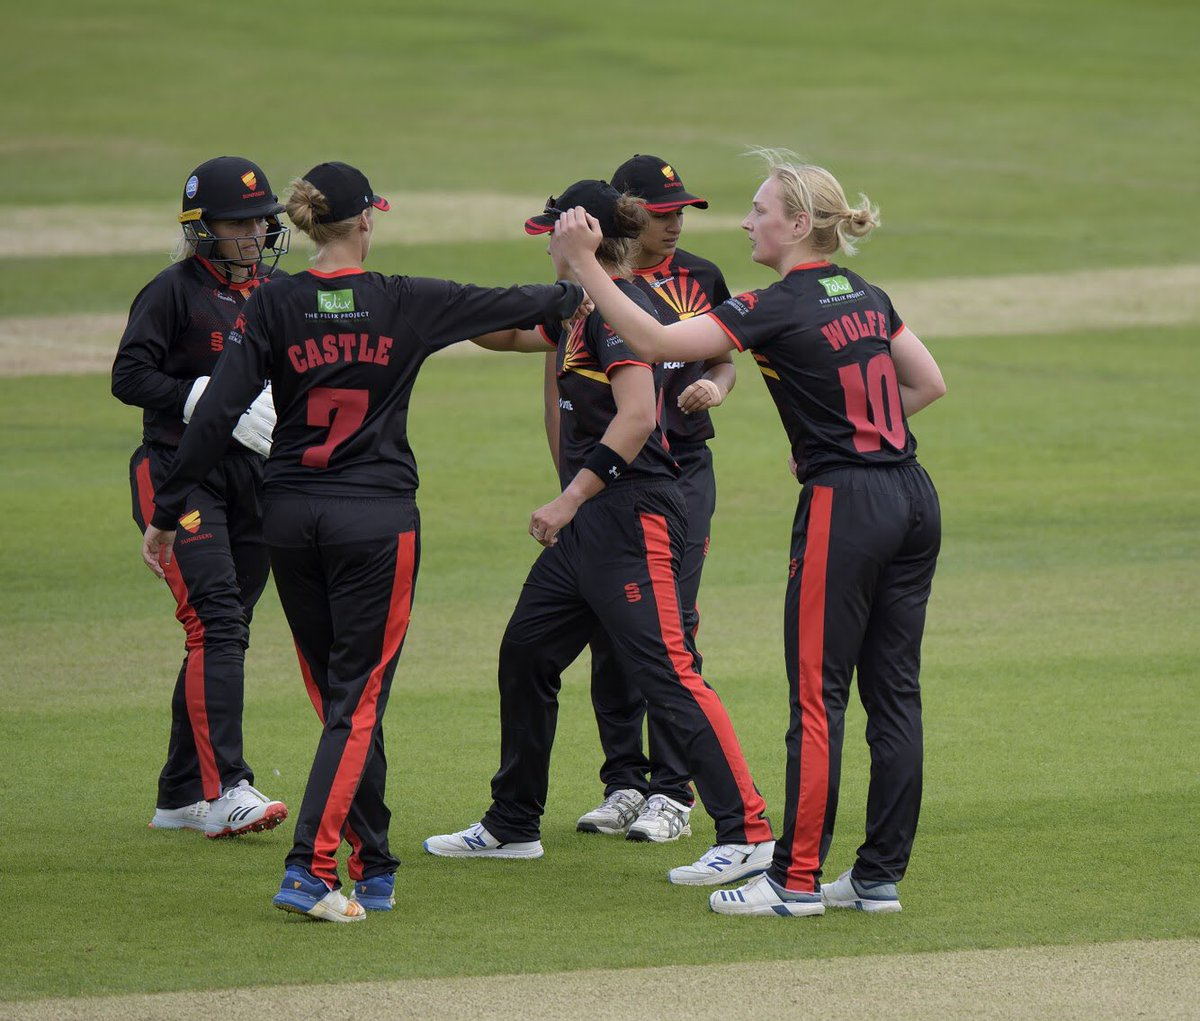 What a whirlwind couple of months it's been, from a vision to 17 players walking out wearing the Sunrisers shirt with pride! Cricket is an amazing sport, where the power of team makes anything possible! #WomensCricketMonth #RiseUp